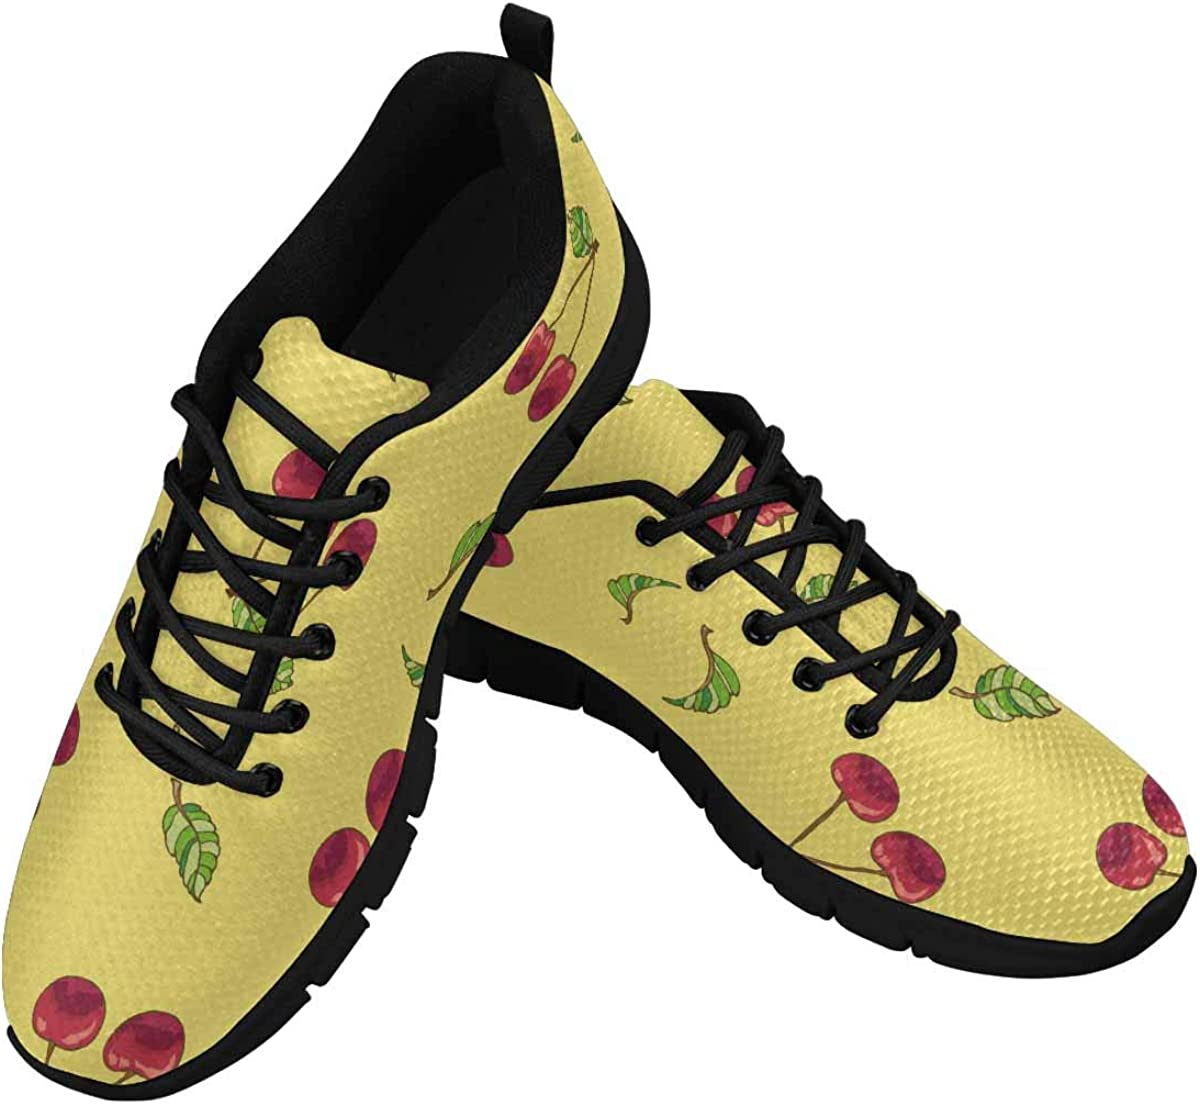 INTERESTPRINT Cherry Berries on Yellow Background Women's Athletic Mesh Breathable Casual Sneaker